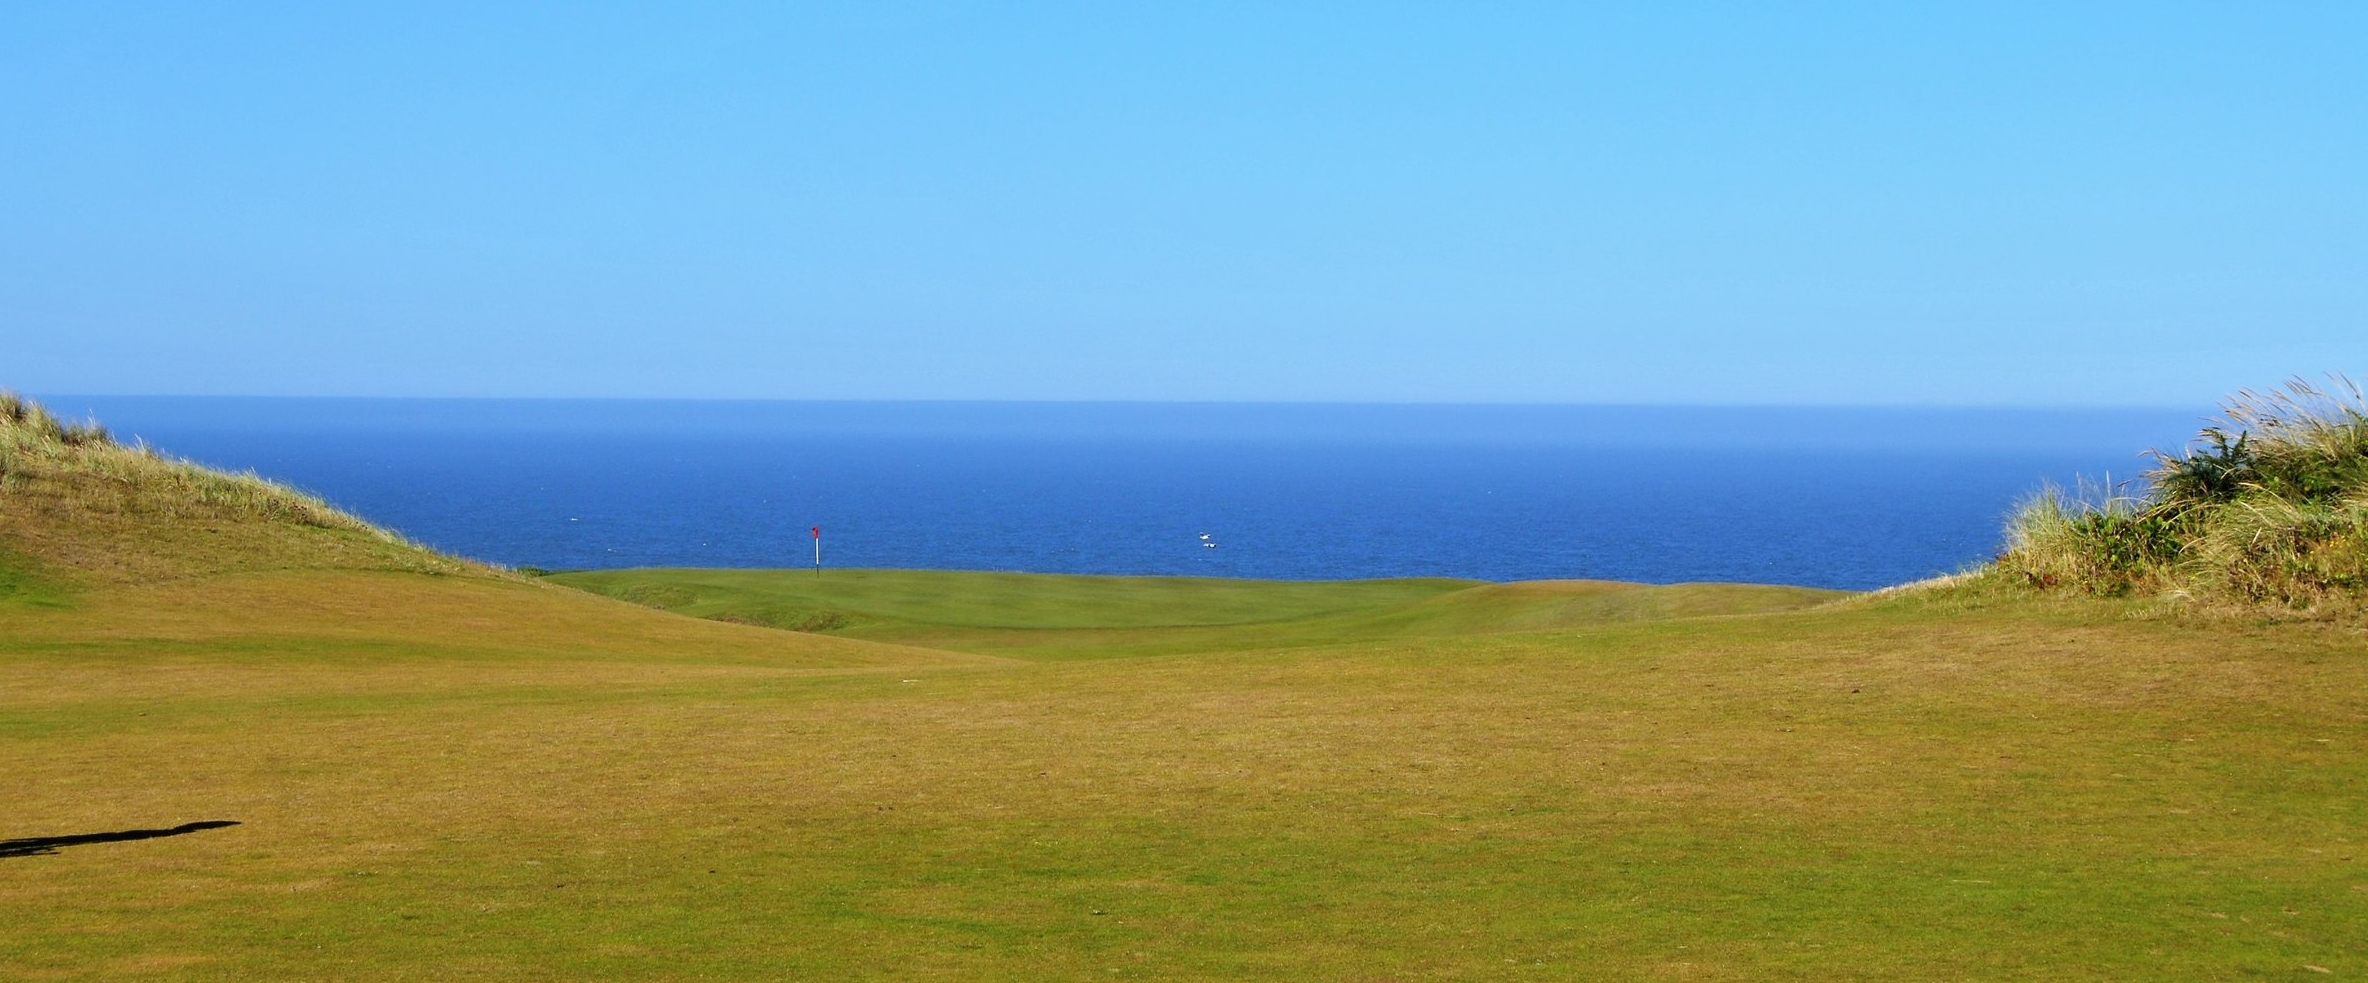 The 4th green at the Bandon Dunes Course